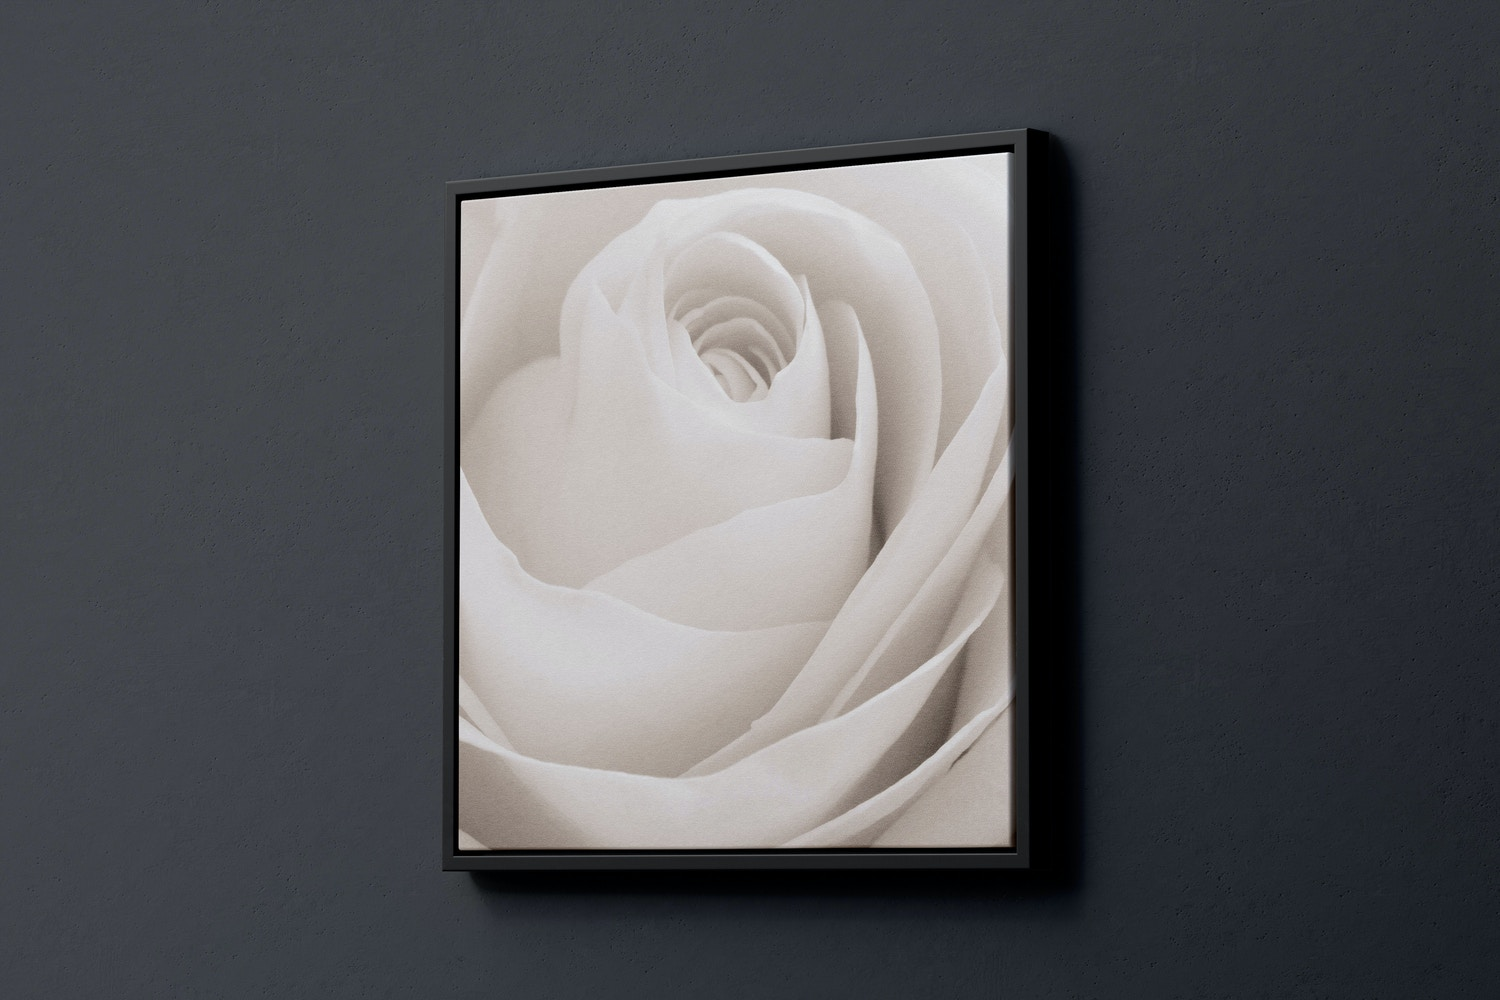 1:1 Square Canvas Mockup in Floater Frame, Right View